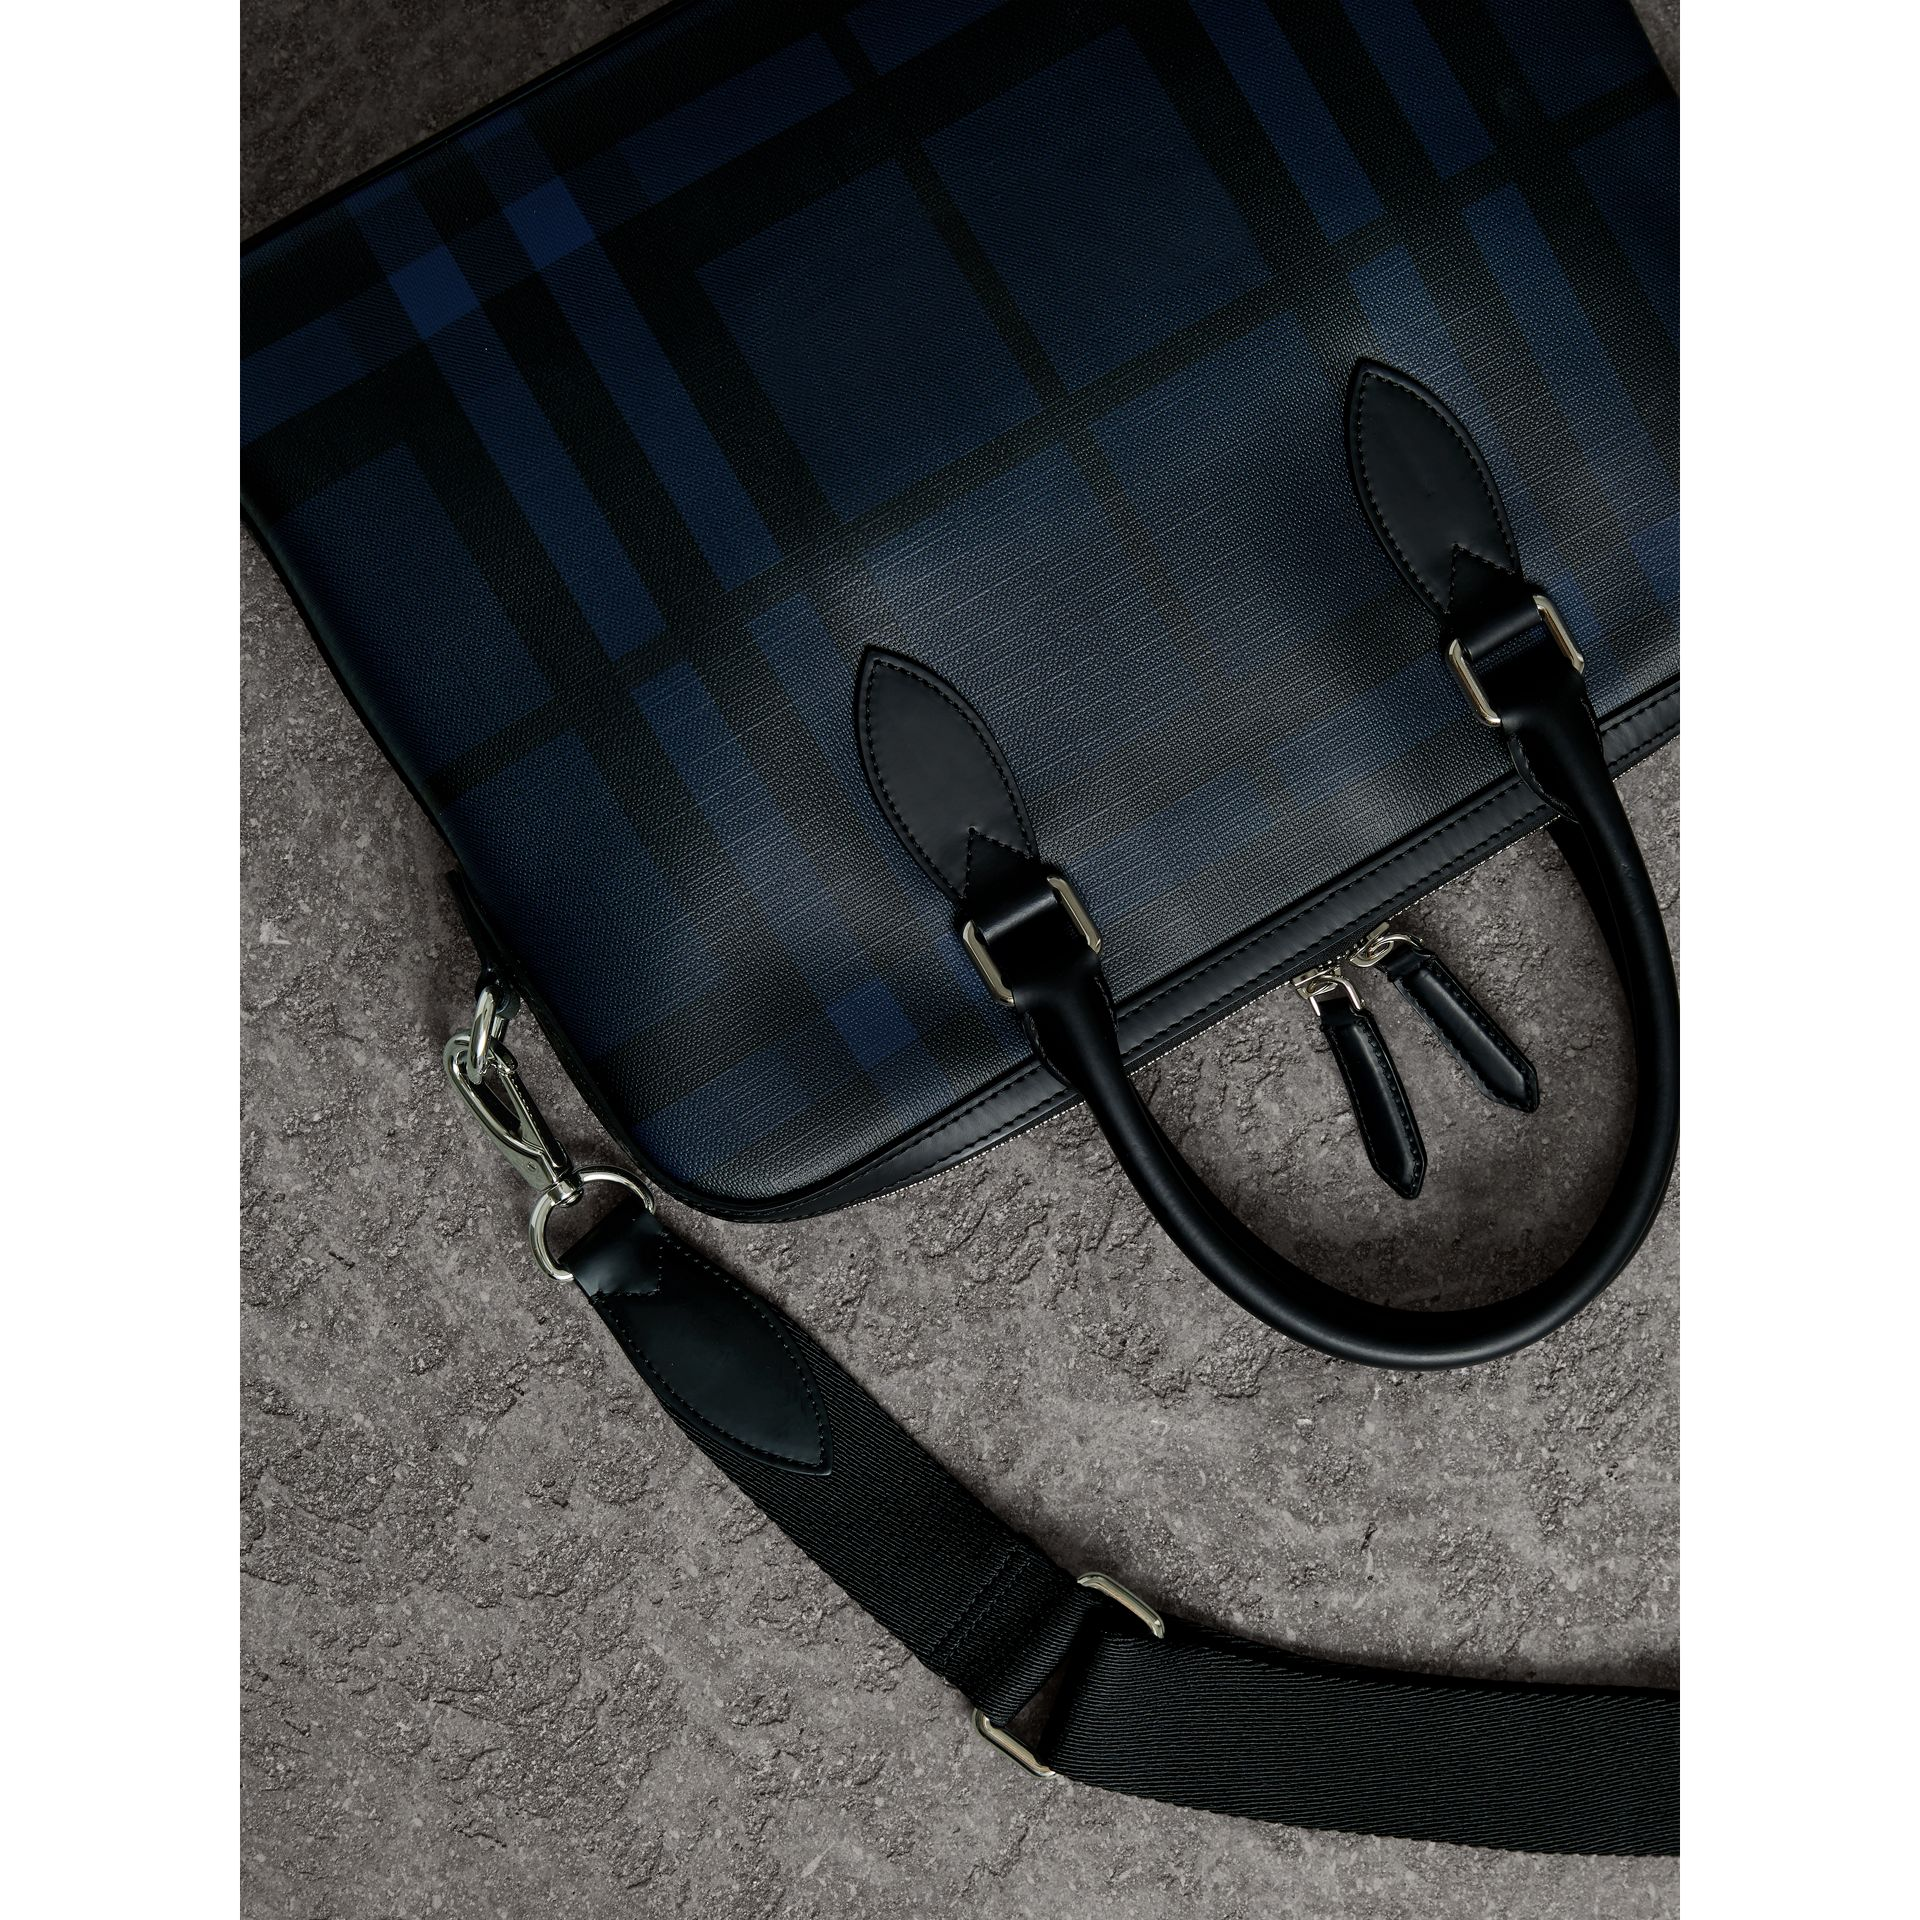 Medium Leather Trim London Check Briefcase in Navy/black - Men | Burberry Australia - gallery image 4